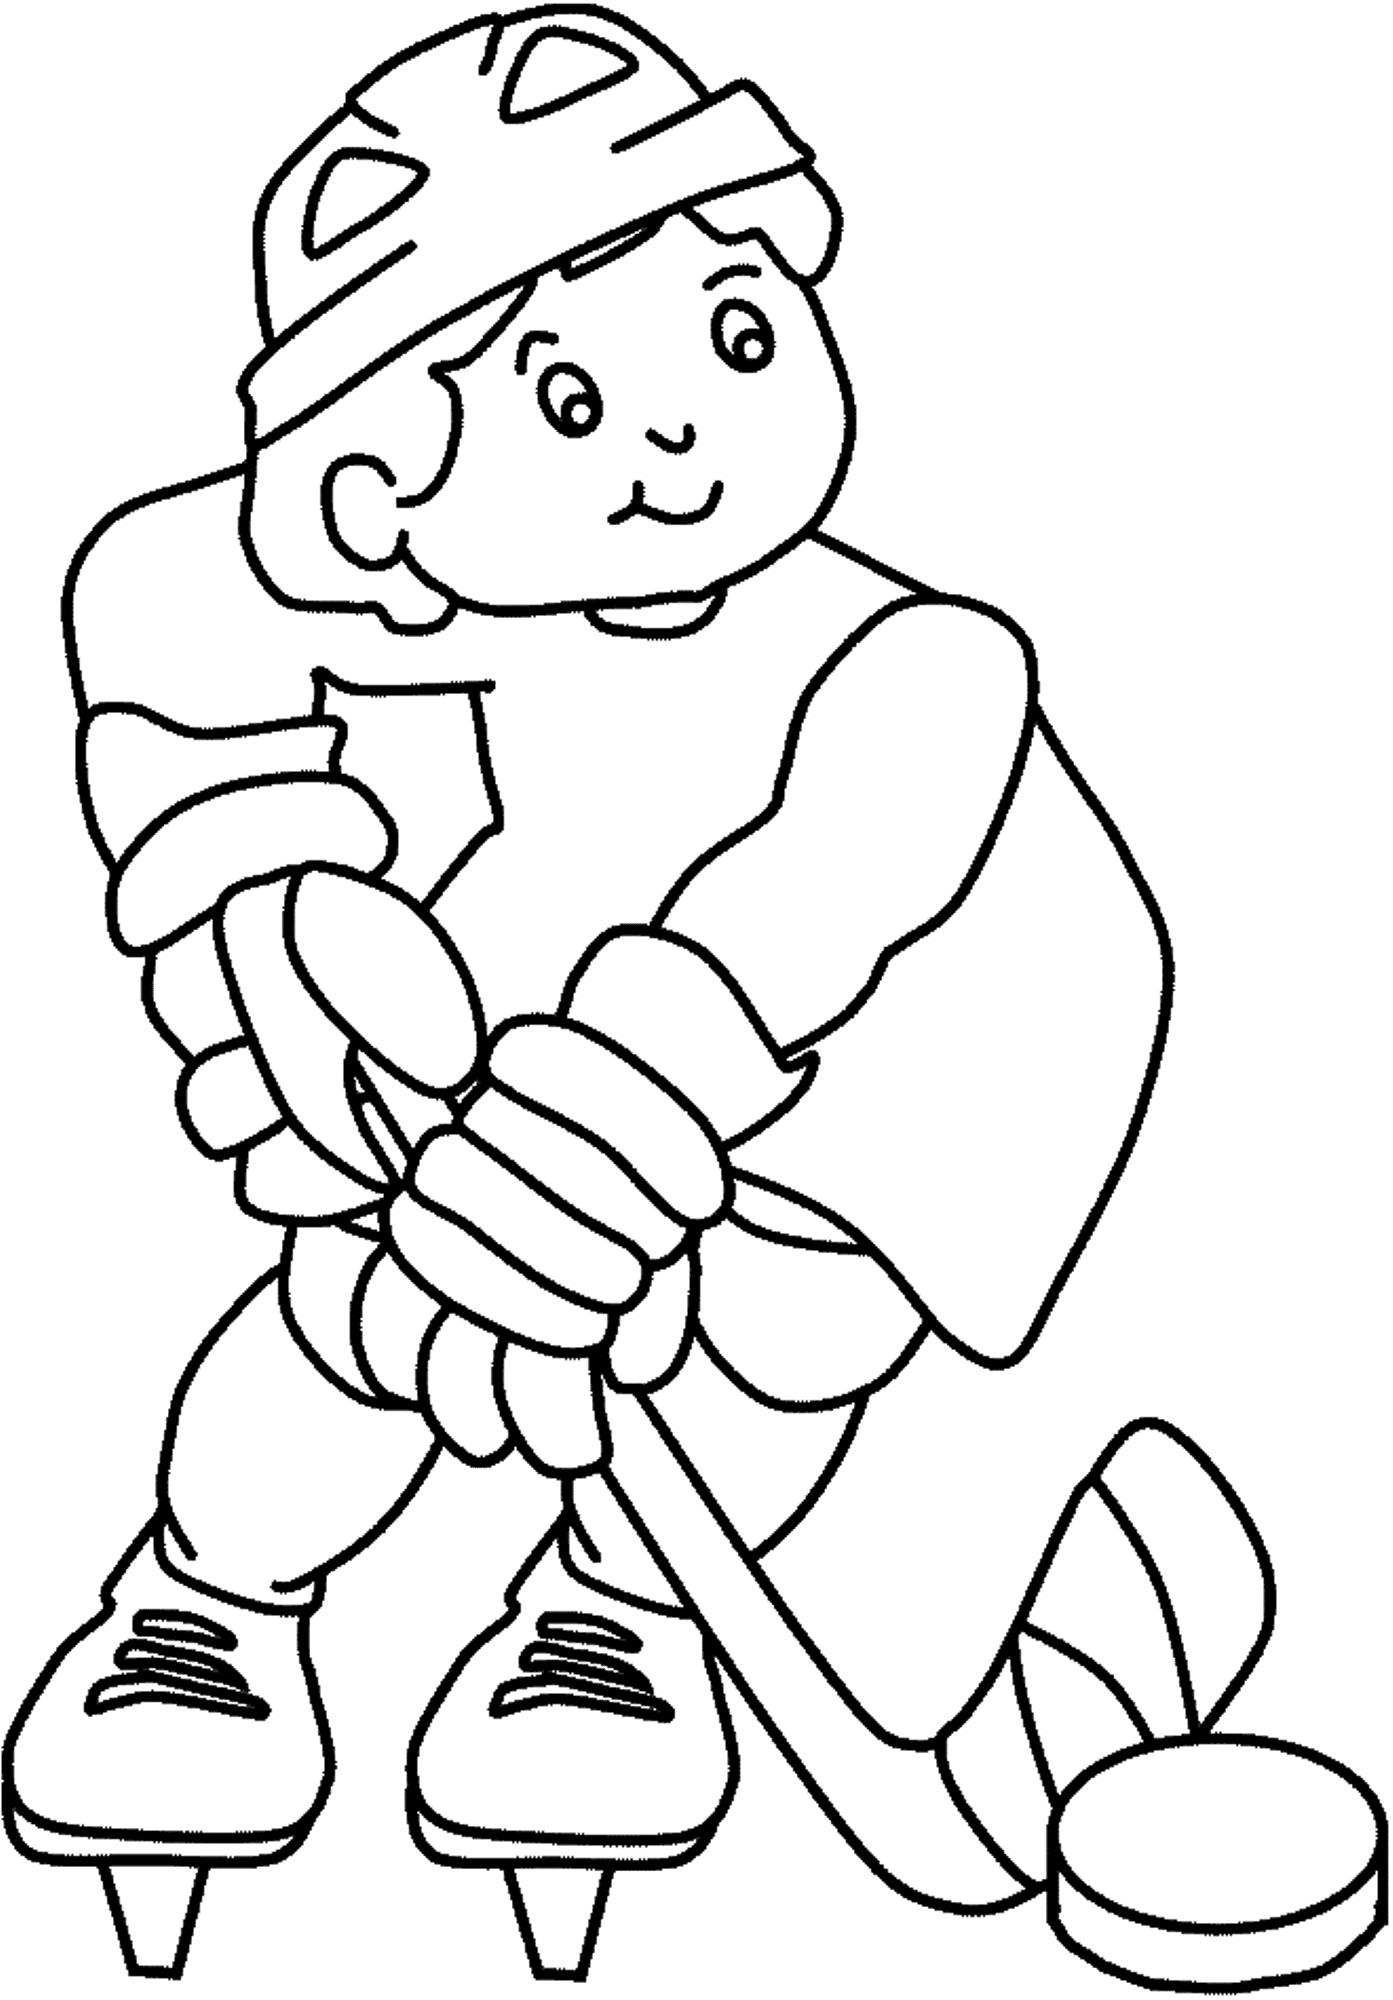 Happily Playing Hockey coloring picture for kids zima Pinterest